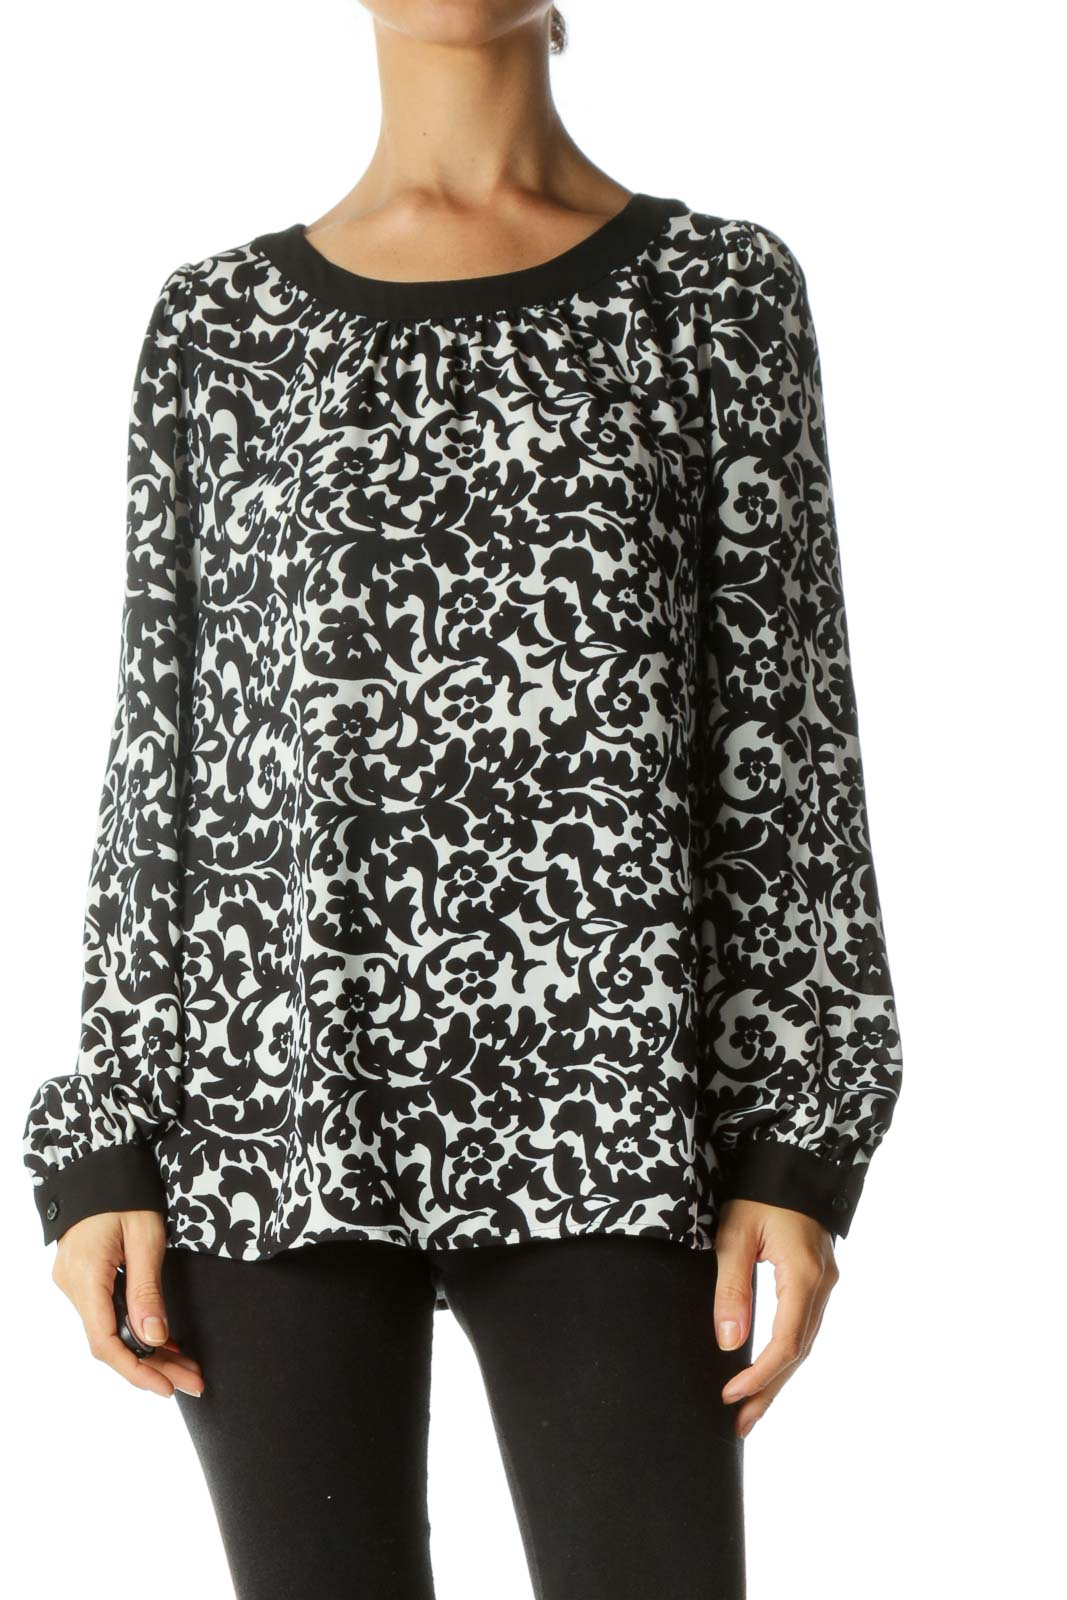 Black White Floral Print Back-Bow Detail Long Sleeve Blouse